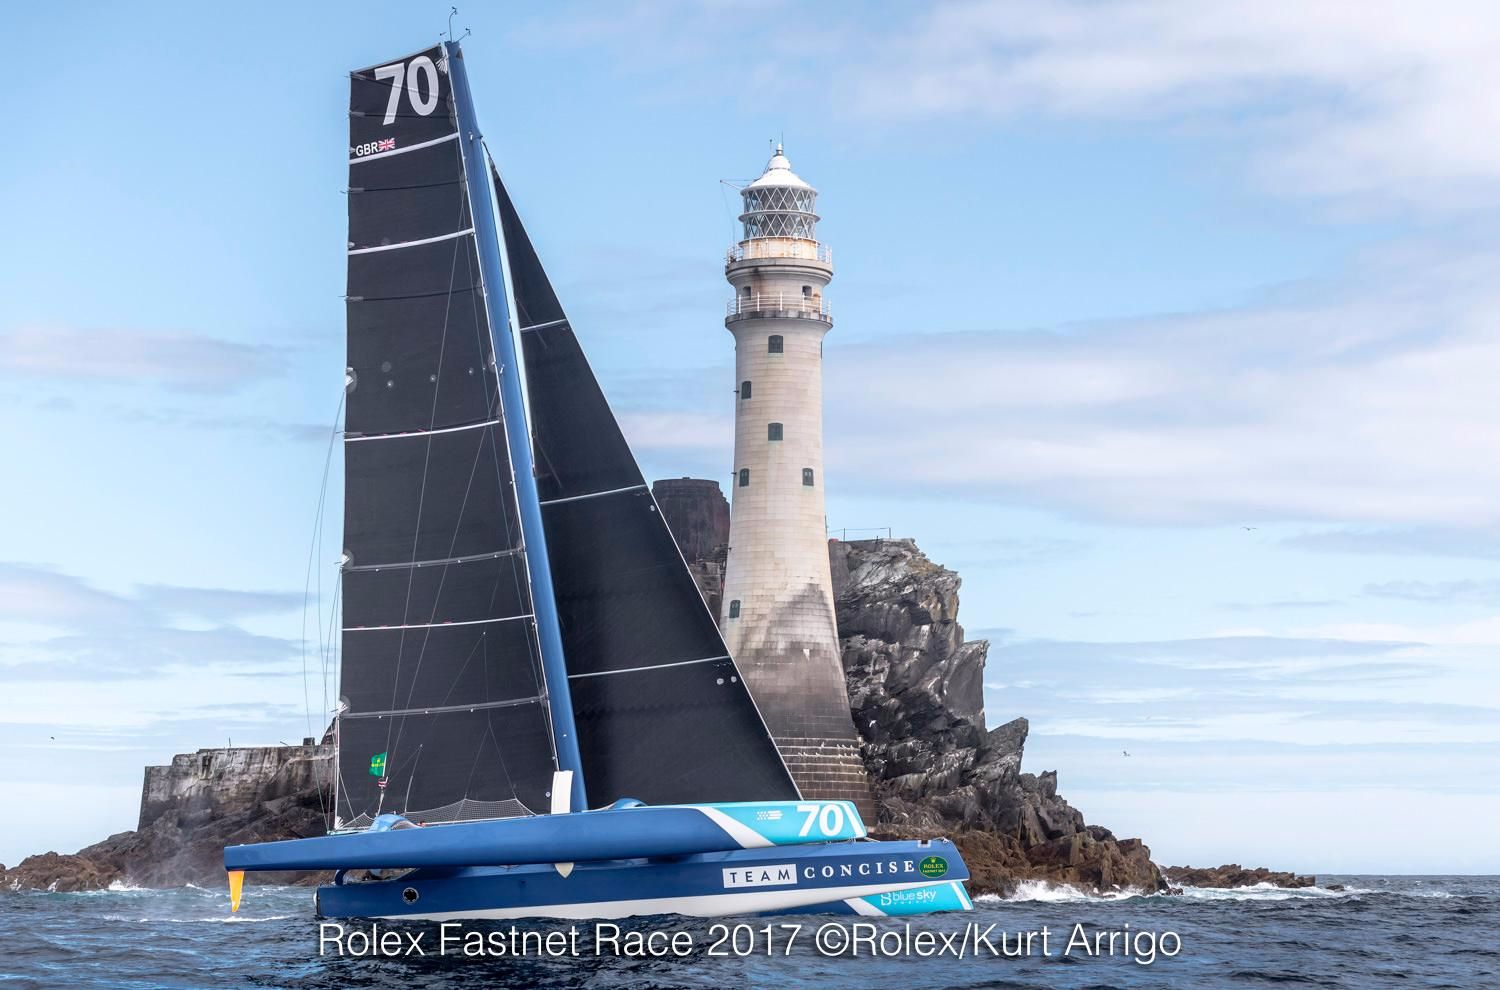 Concise 10, the Ned Collier-Wakefield skippered MOD 70, was the first round the Fastnet Rock on Monday 7 August. Credit: ROLEX/Kurt Arrigo